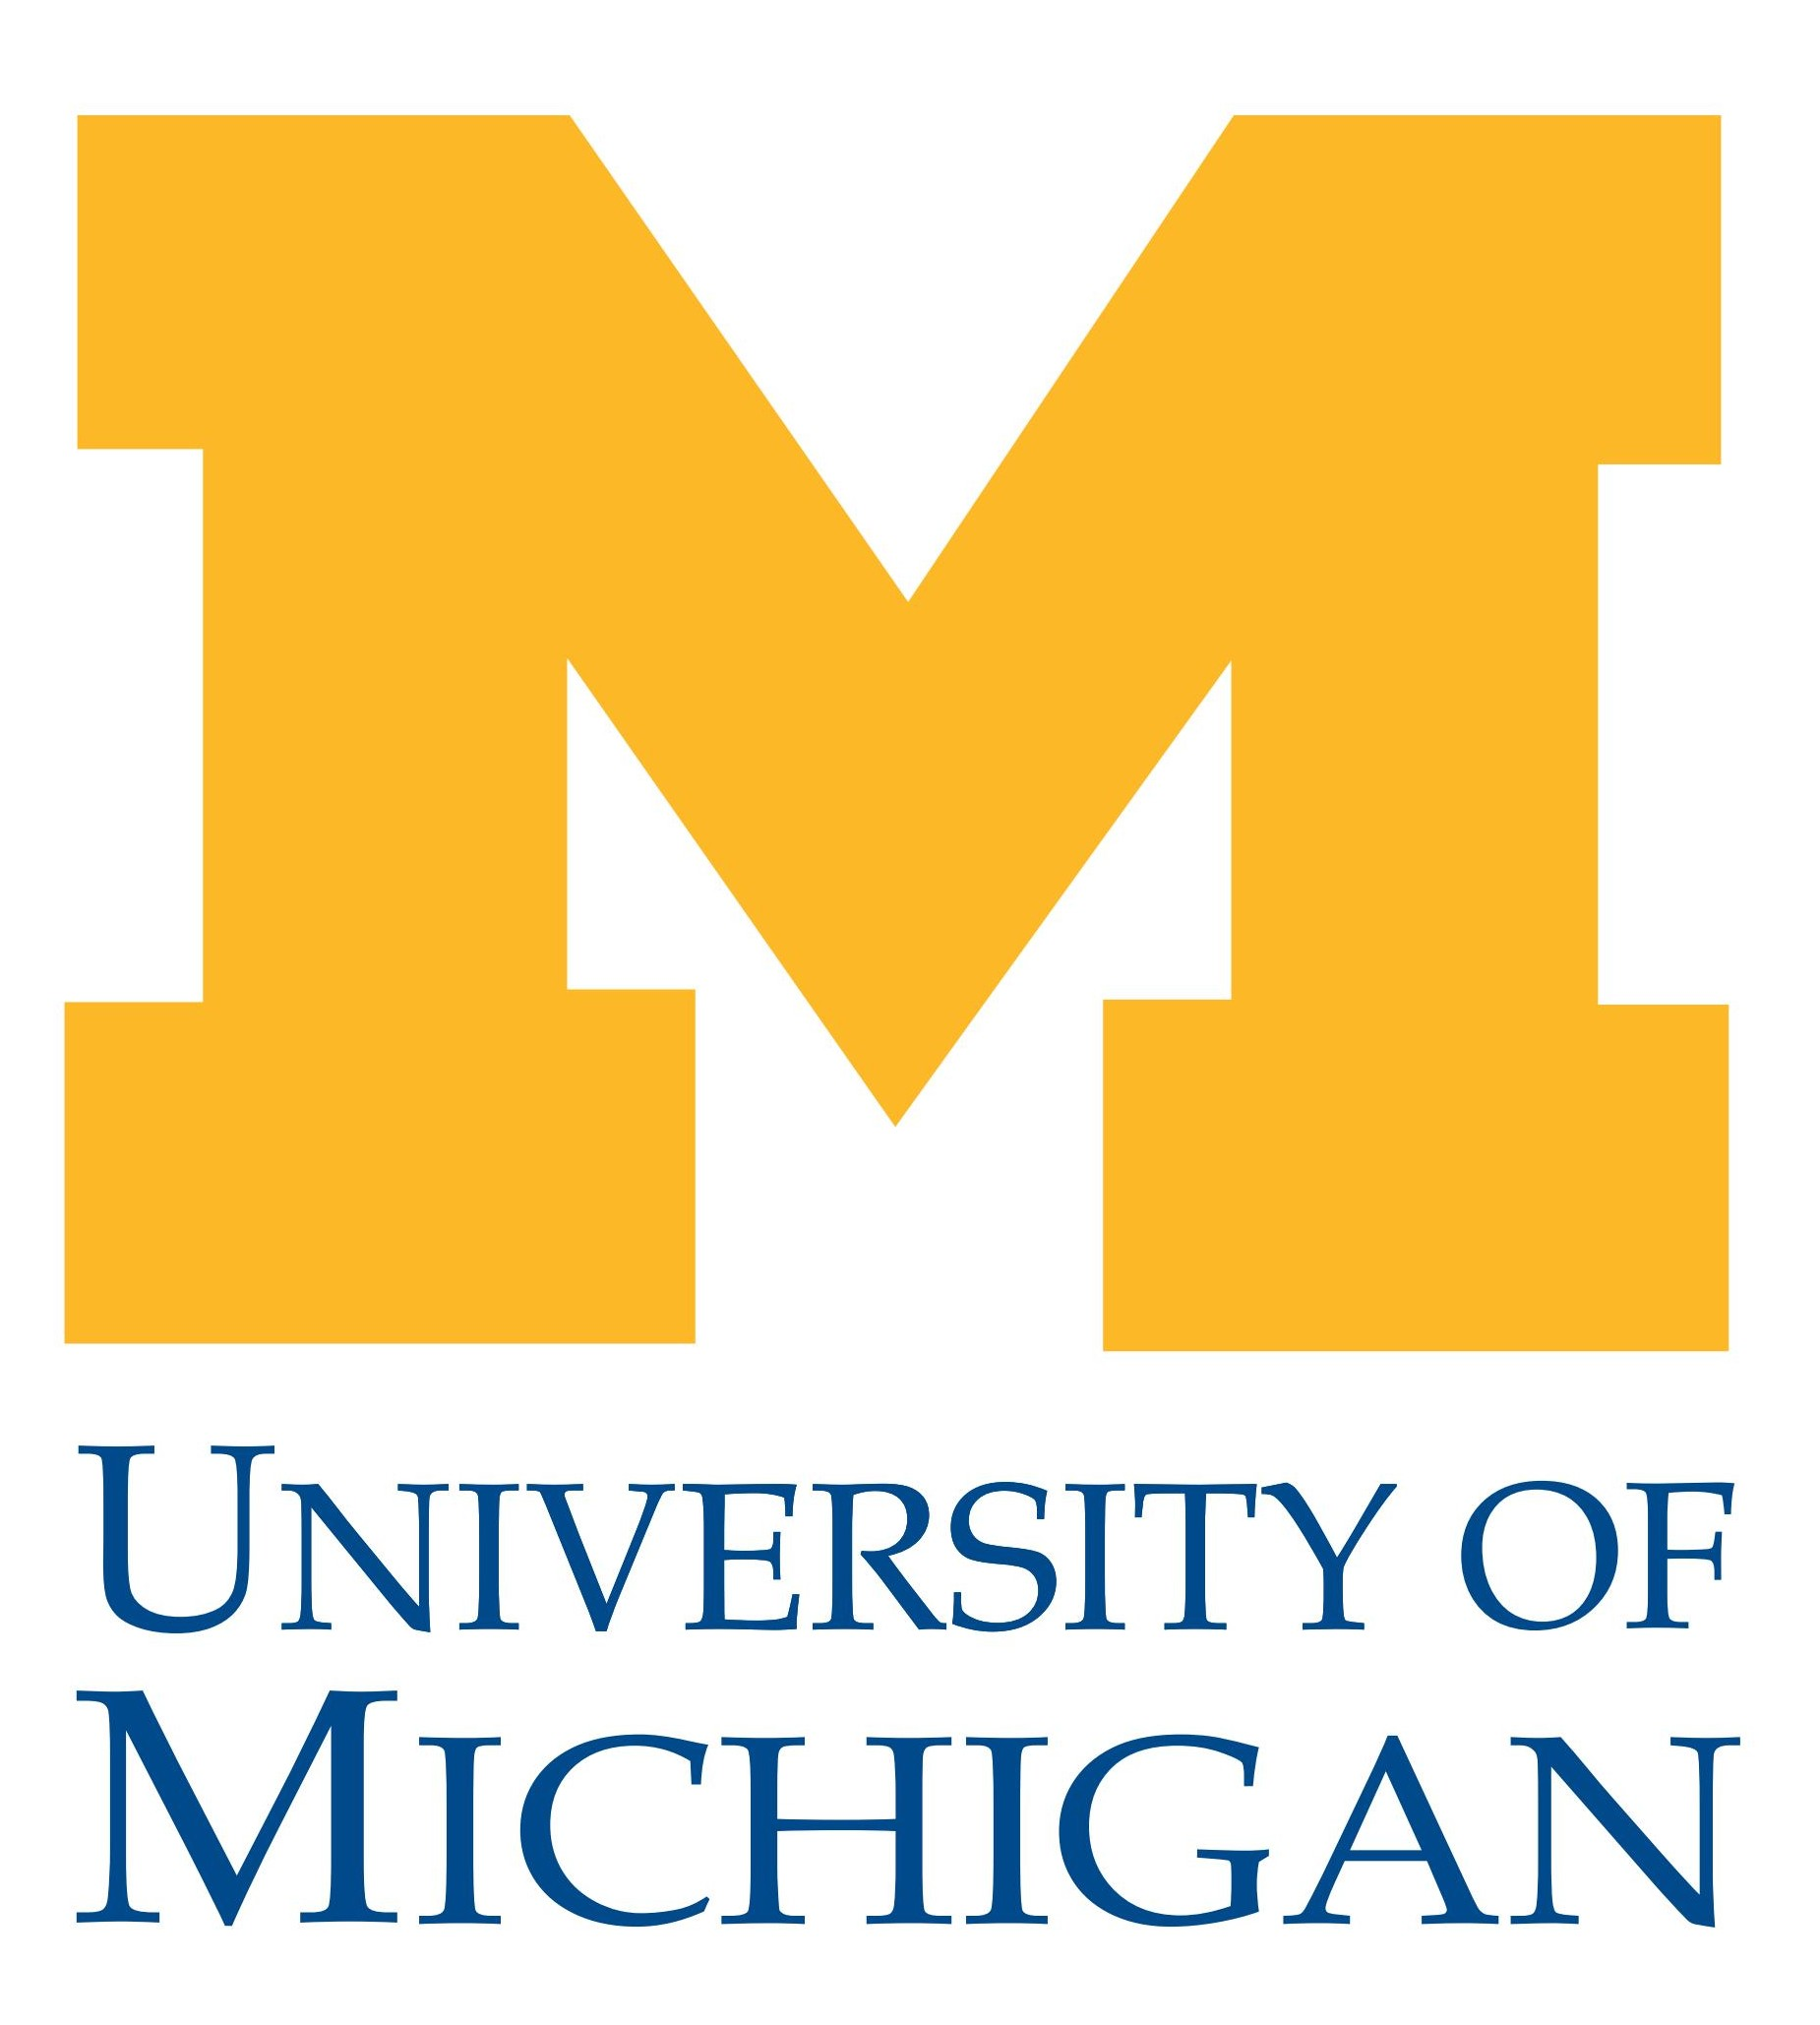 michigan silhouette vector at getdrawings com free for personal rh getdrawings com university of michigan logo download free University of Michigan Football Logo